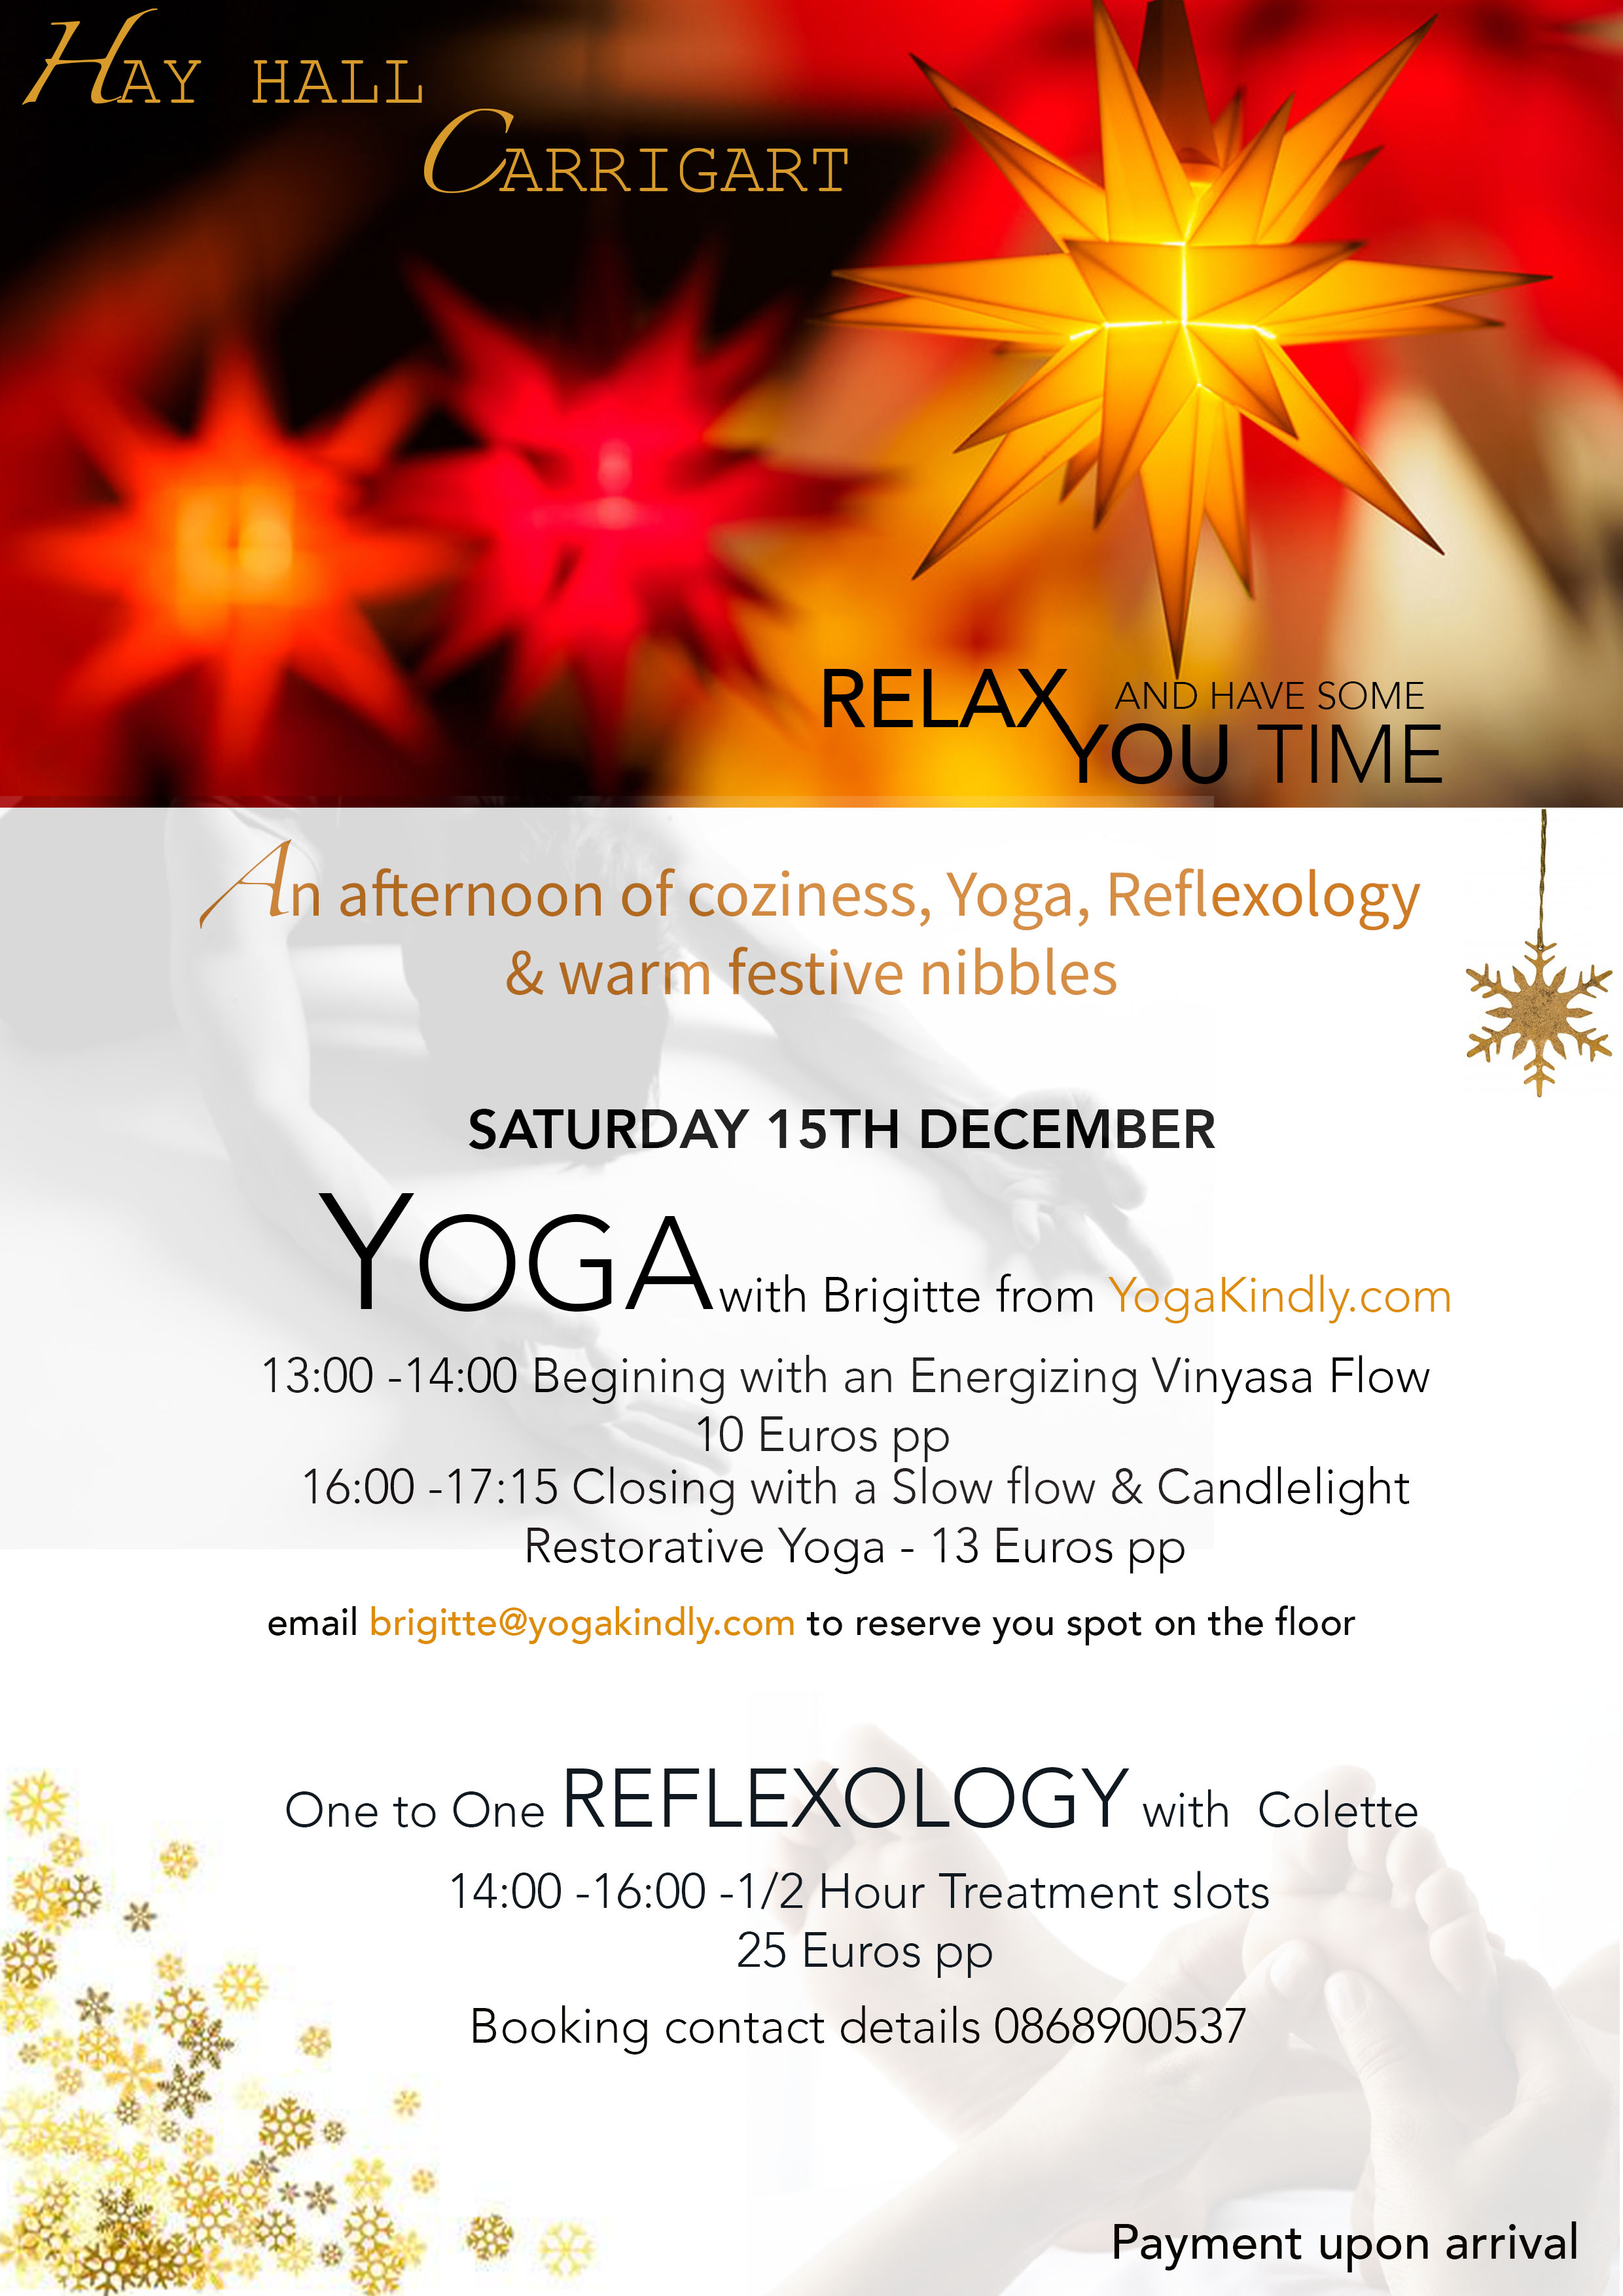 Ireland Mind and Body Pre Christmas Yoga and Reflexology…just come and relax with us… -